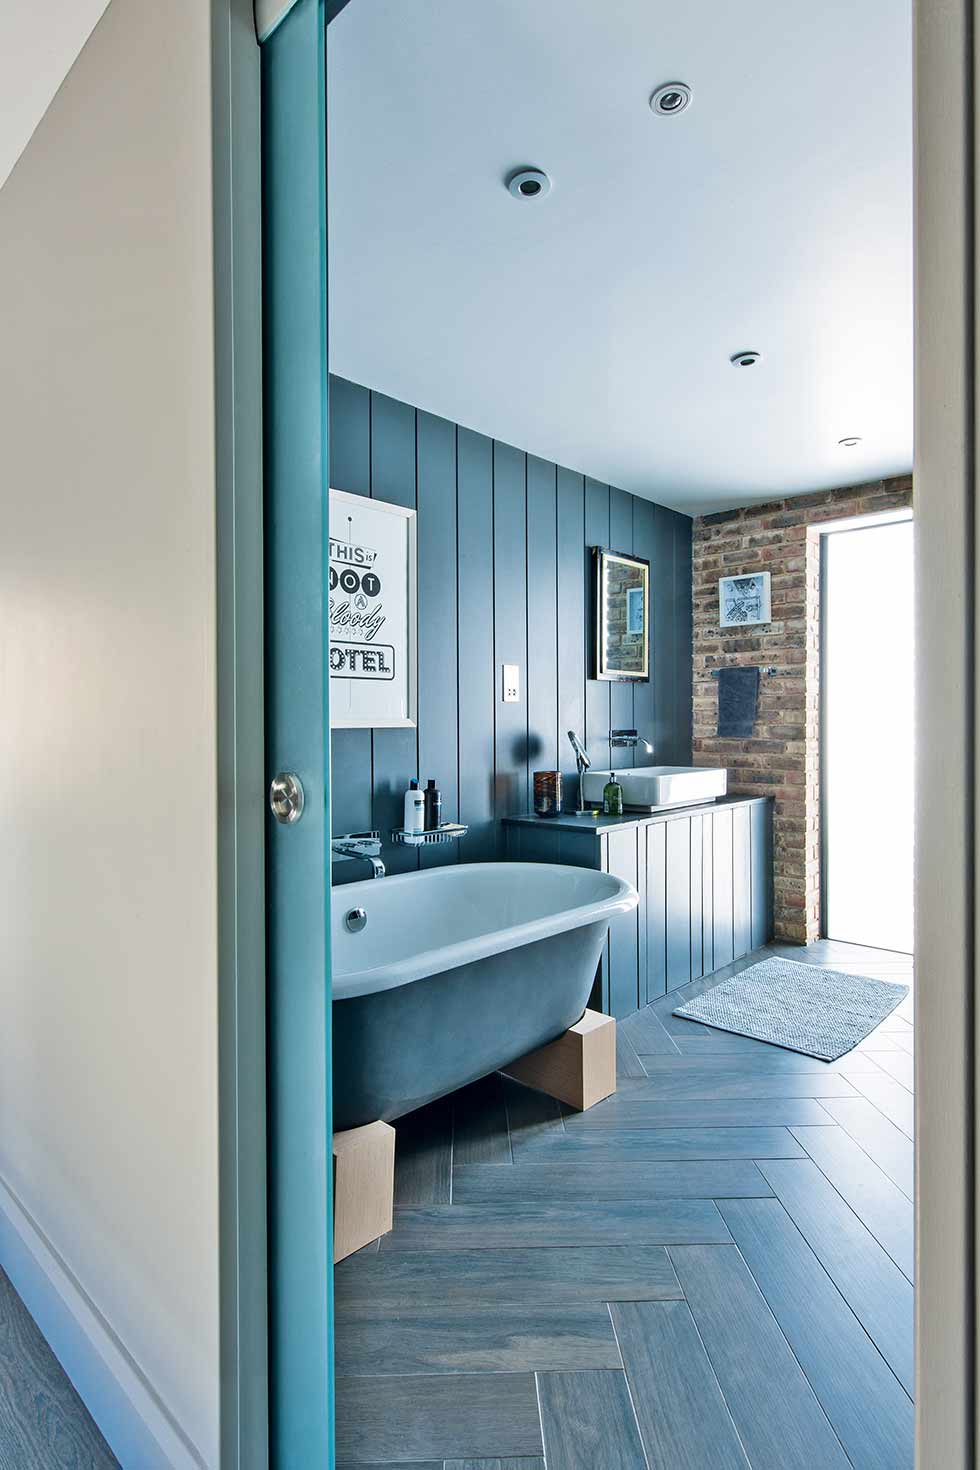 Loft style self build grey bathroom with roll top bath